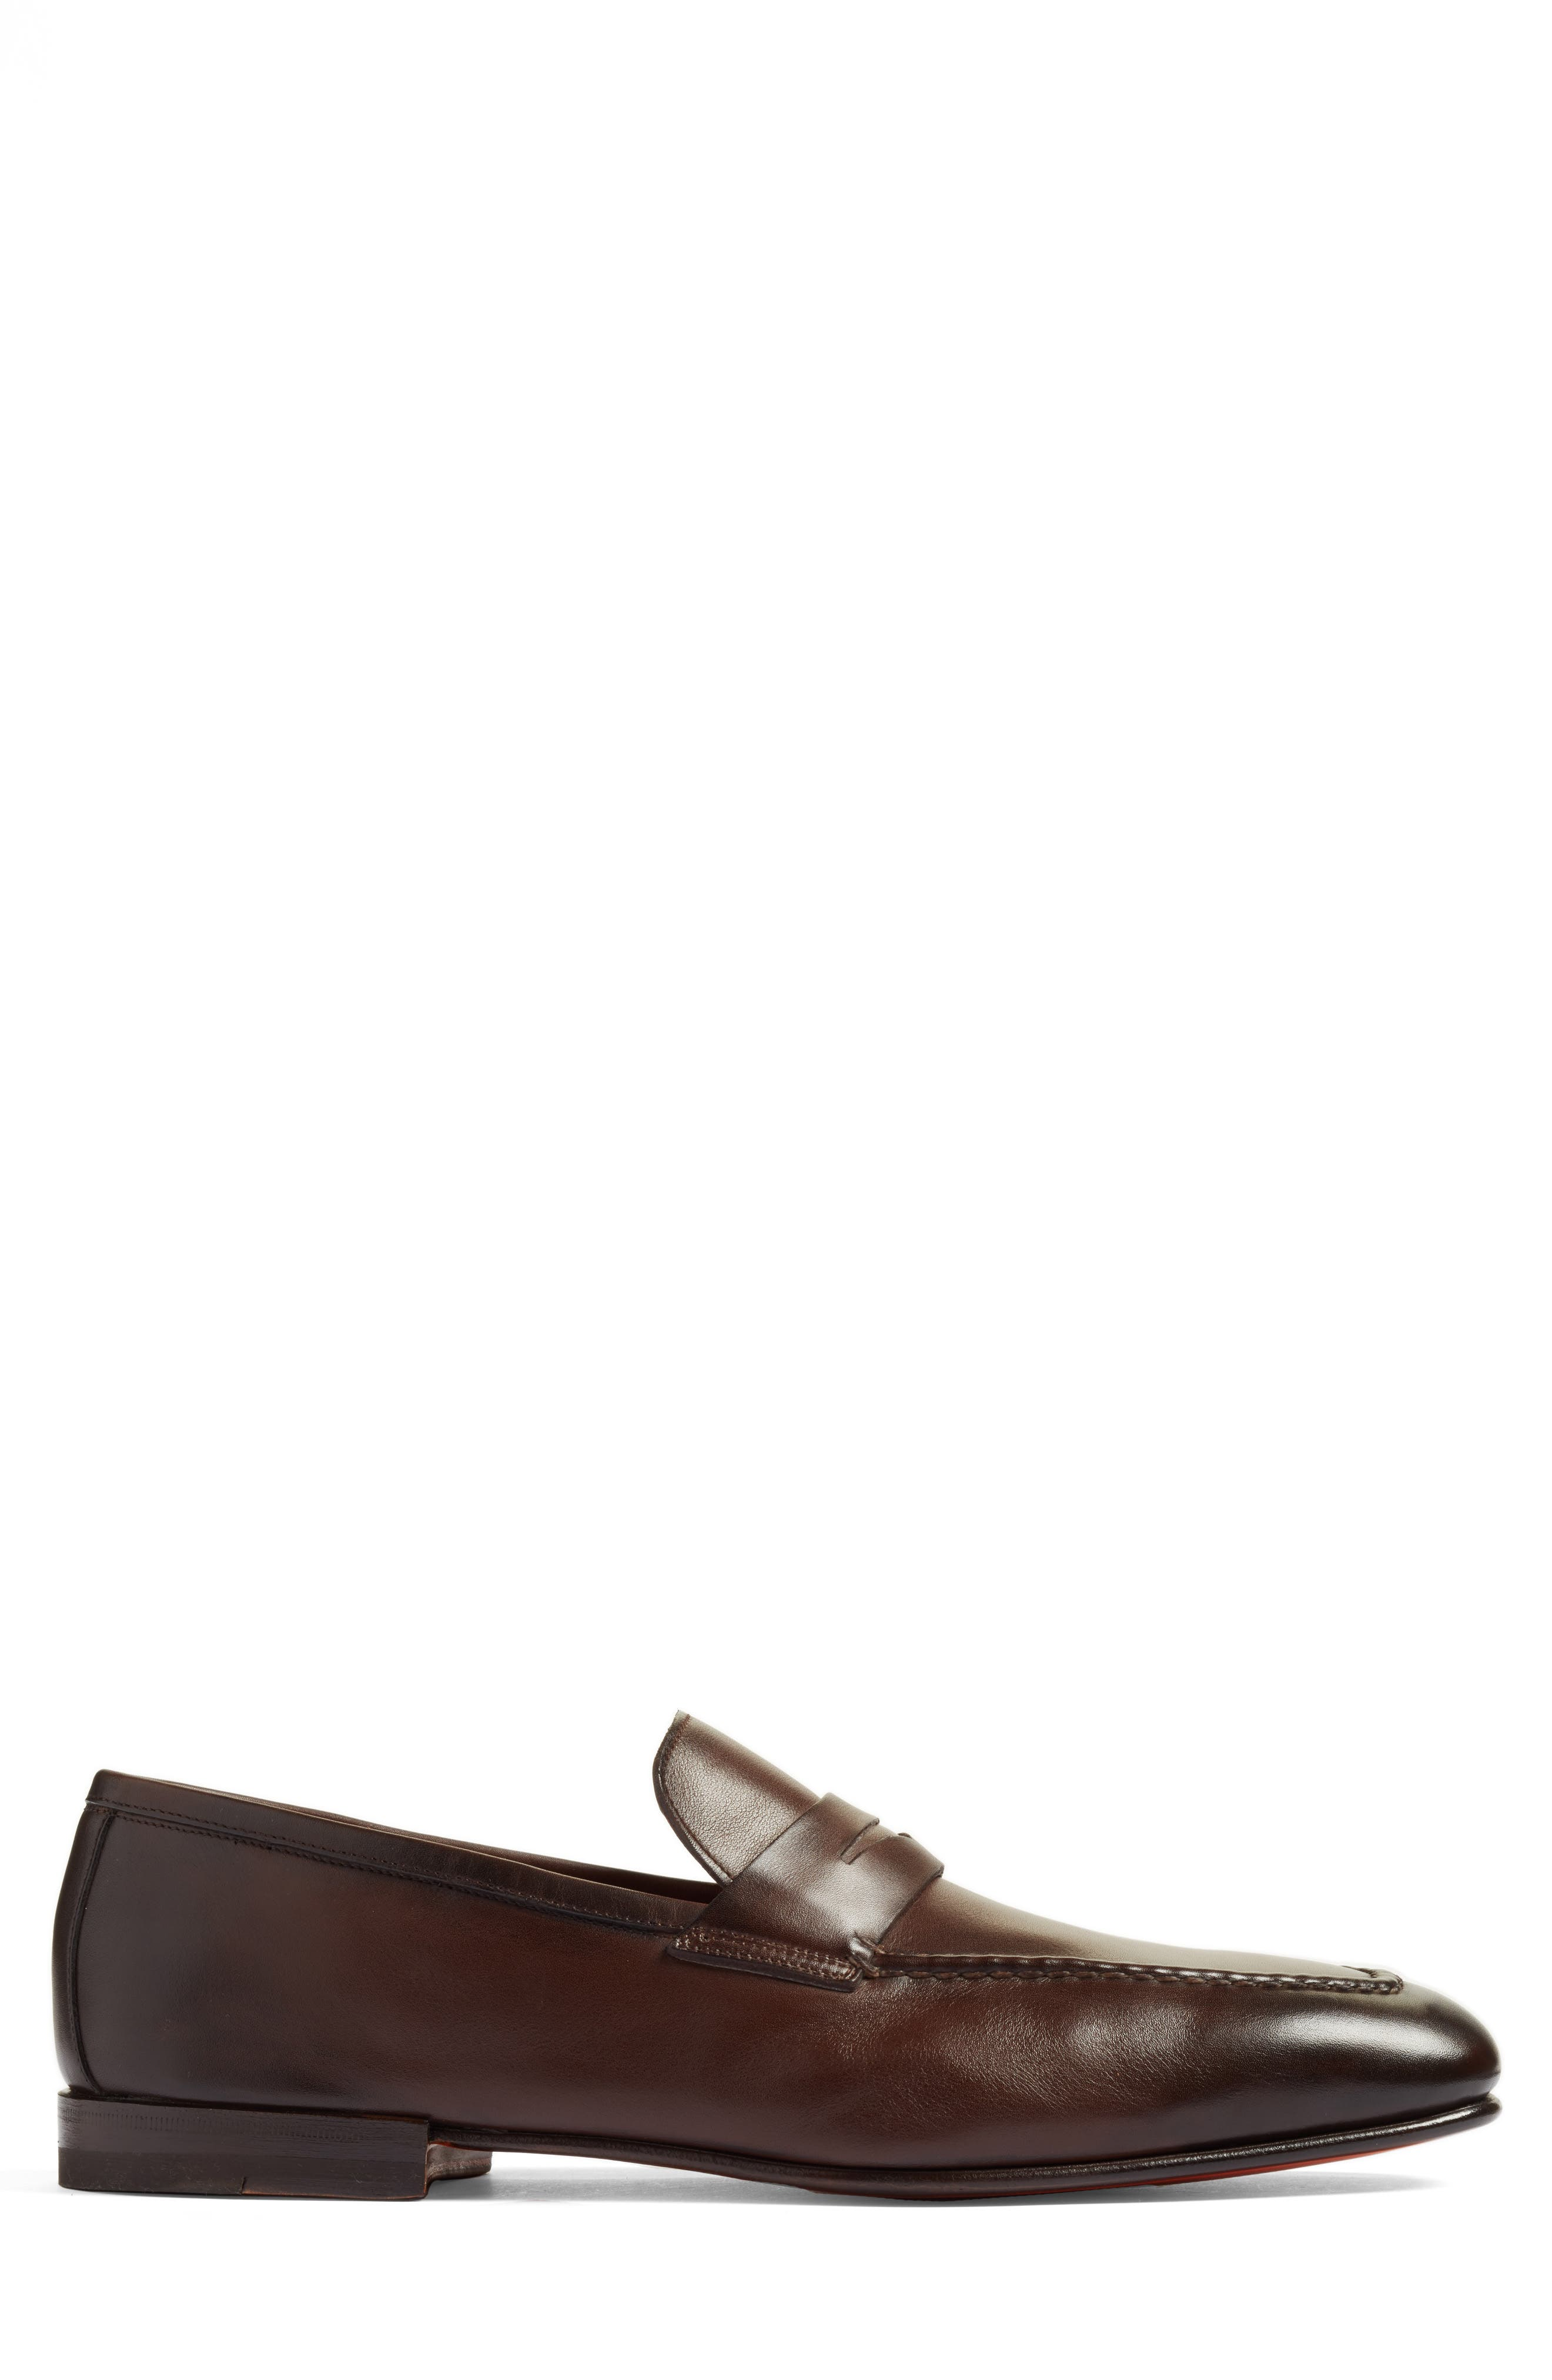 Fox Packable Penny Loafer,                             Alternate thumbnail 3, color,                             DARK BROWN LEATHER